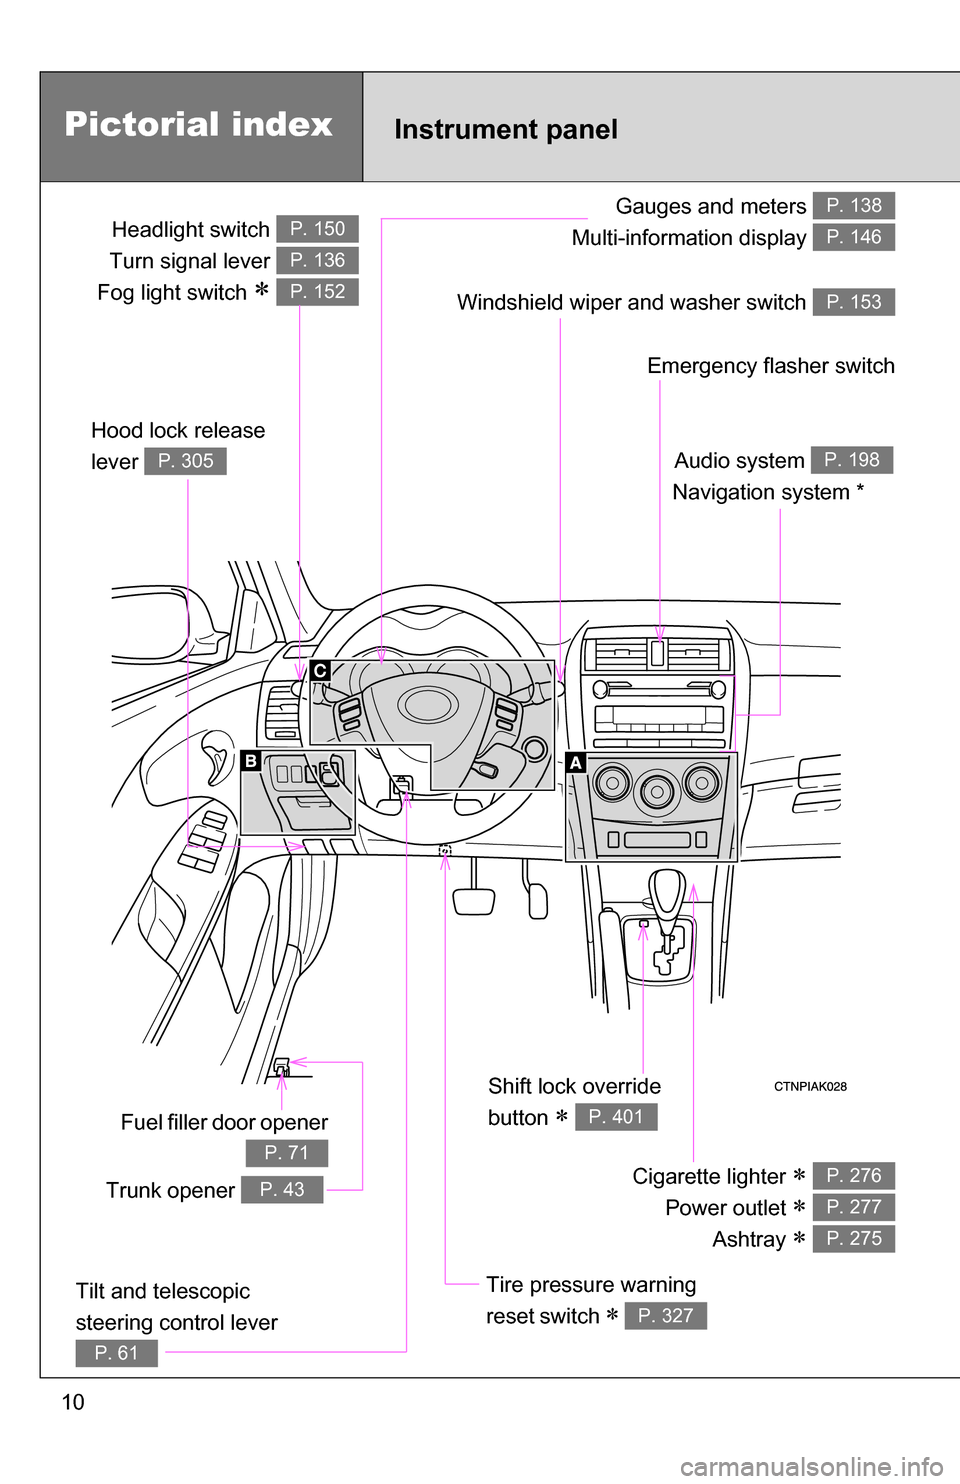 Toyota Corolla Owners Manual: Multi-information display